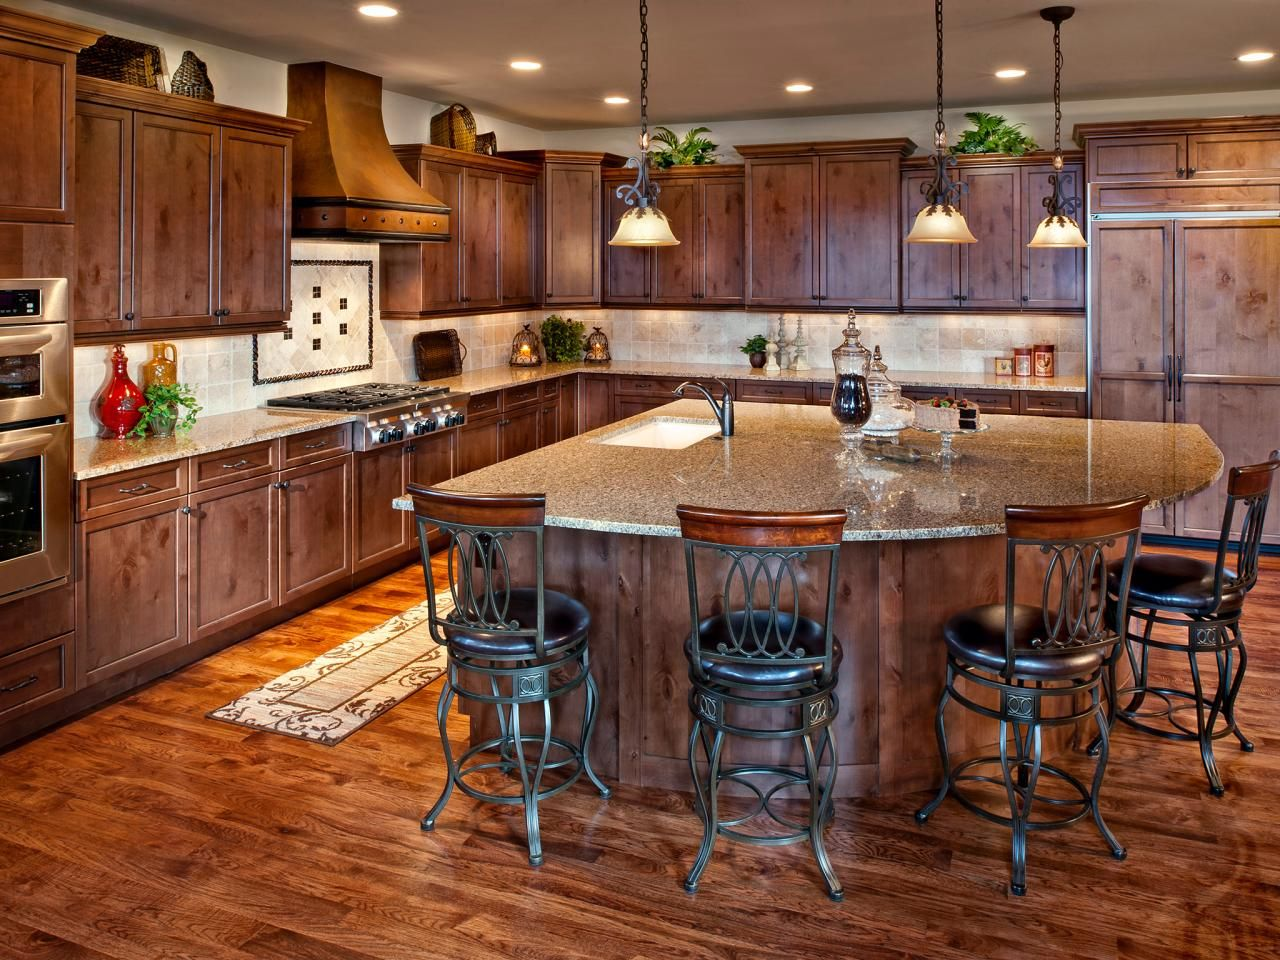 Beautiful Pictures of Kitchen Islands: HGTV\'s Favorite Design Ideas ...